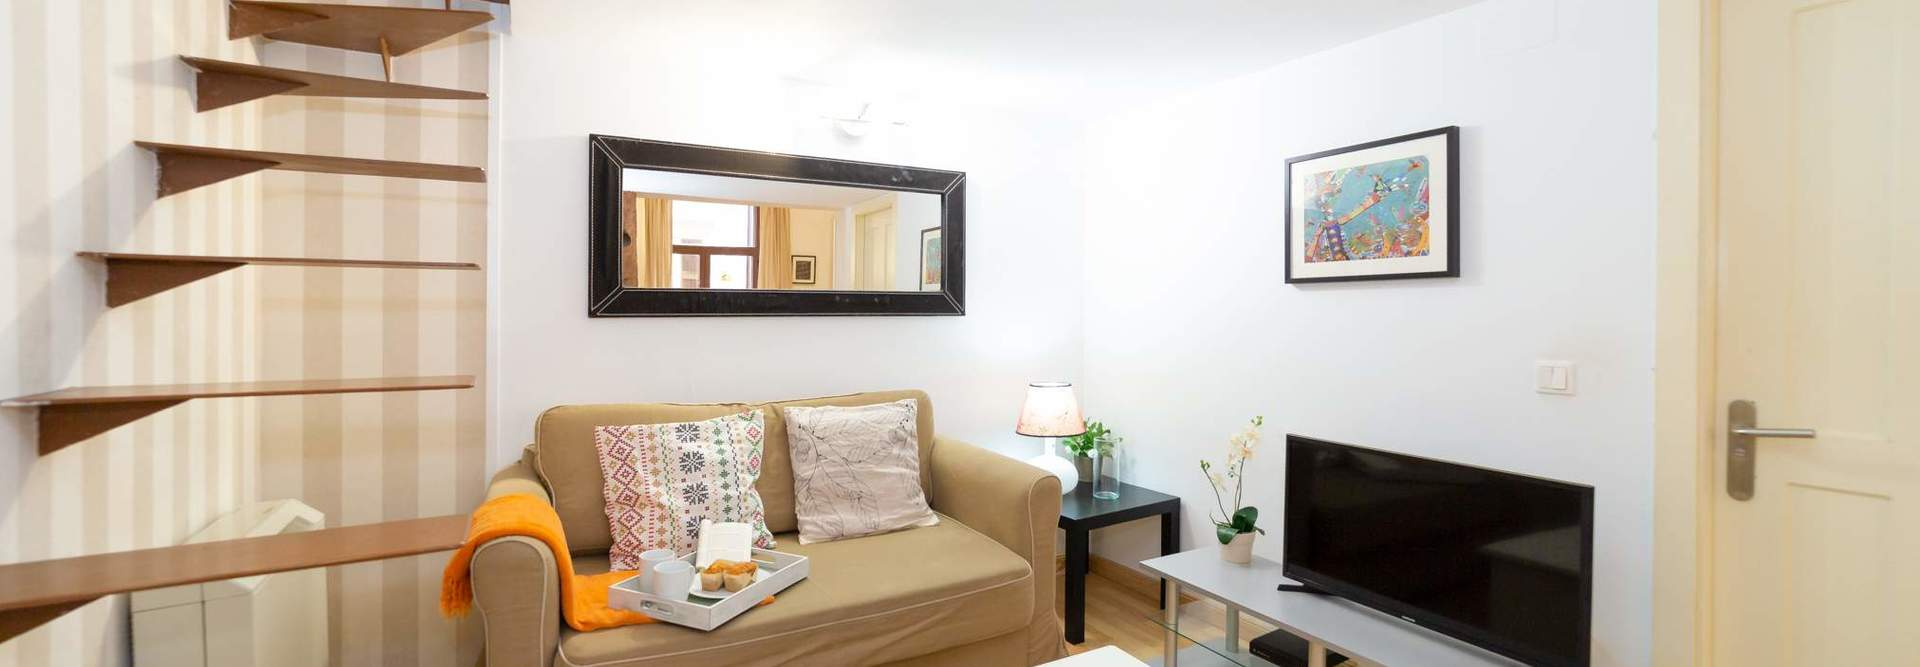 Home alquiler apartamentos madrid mad4rent 29